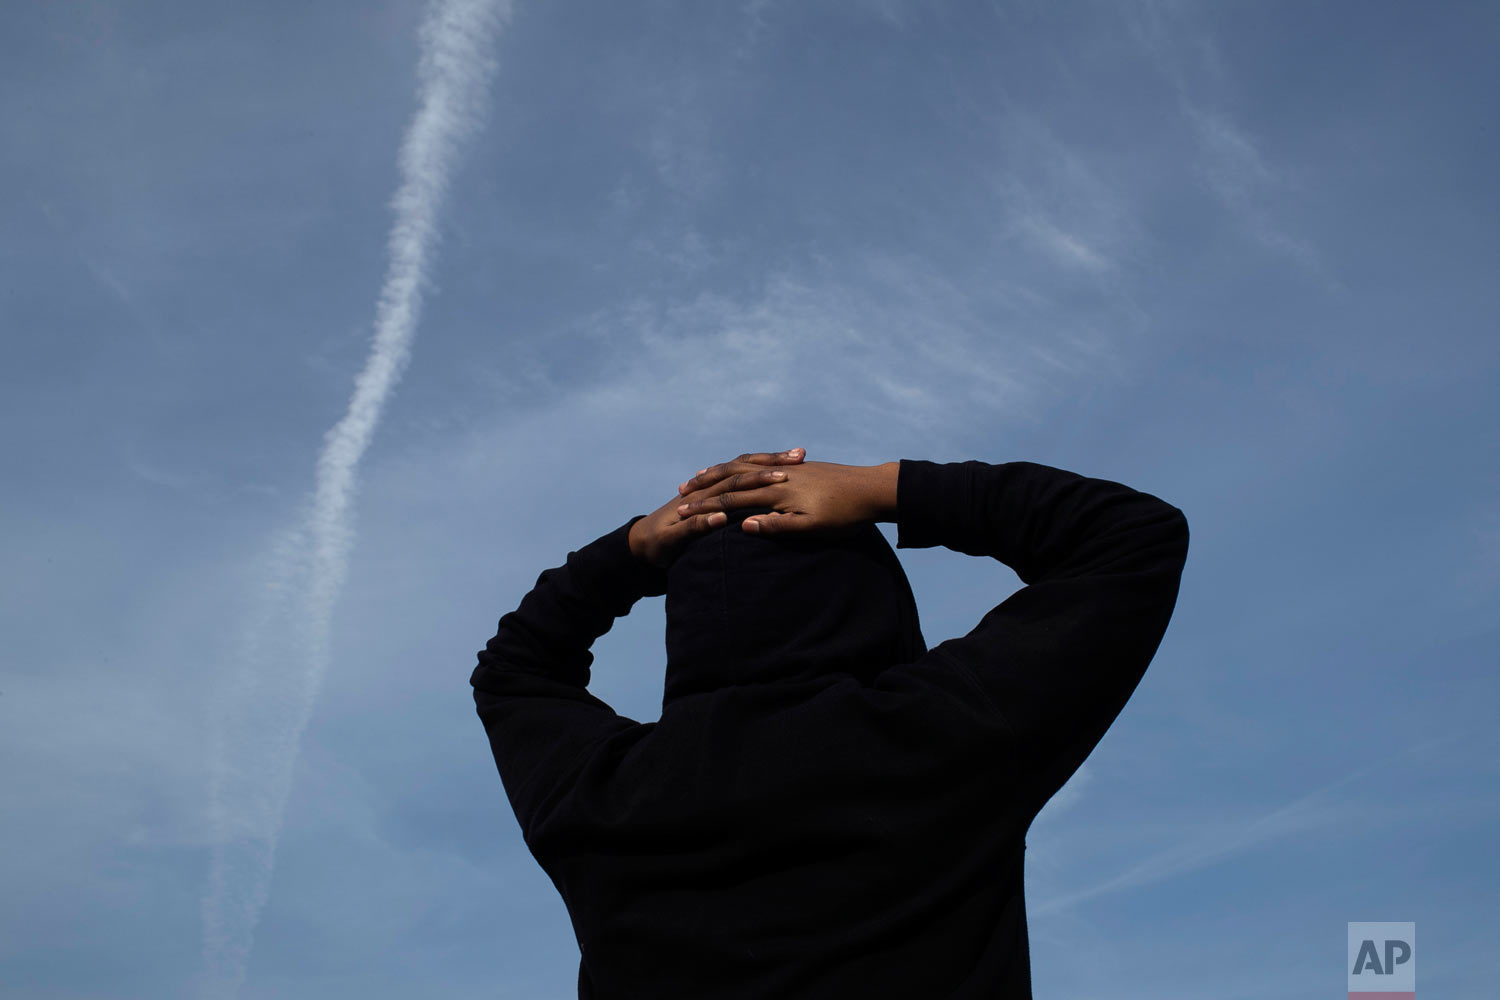 A survivor of sexual assault looks at the evening sky in the Brooklyn borough of New York on Thursday, March 14, 2019. The young woman seeks peace through meditation. She said that she was assaulted by someone she knew but never reported it because she feared she wouldn't be believed. (AP Photo/Wong Maye-E)